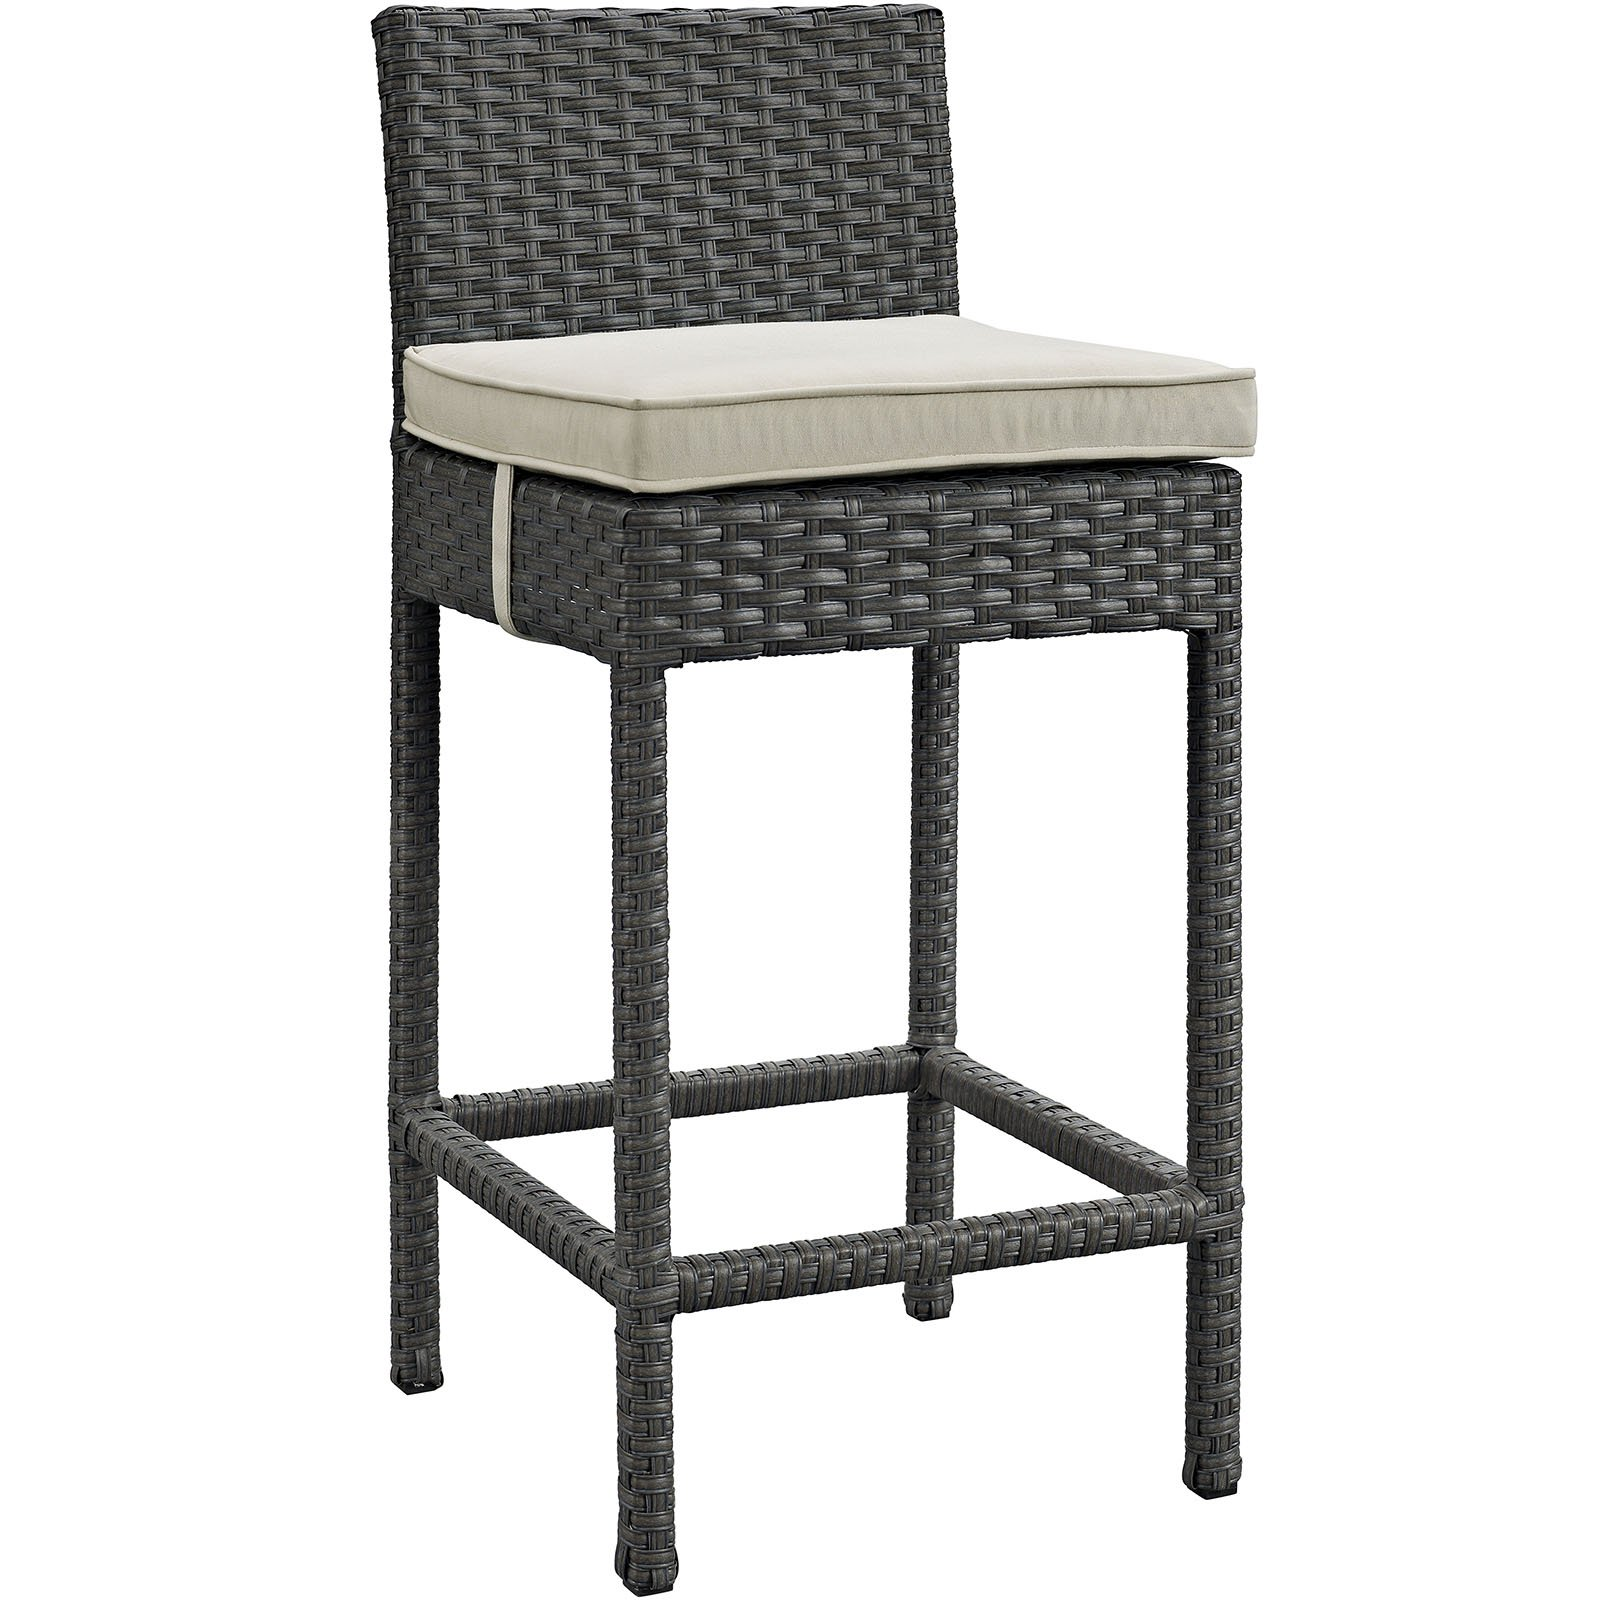 Modway Sojourn Outdoor Patio Wicker Sunbrella Bar Stool, Multiple Colors